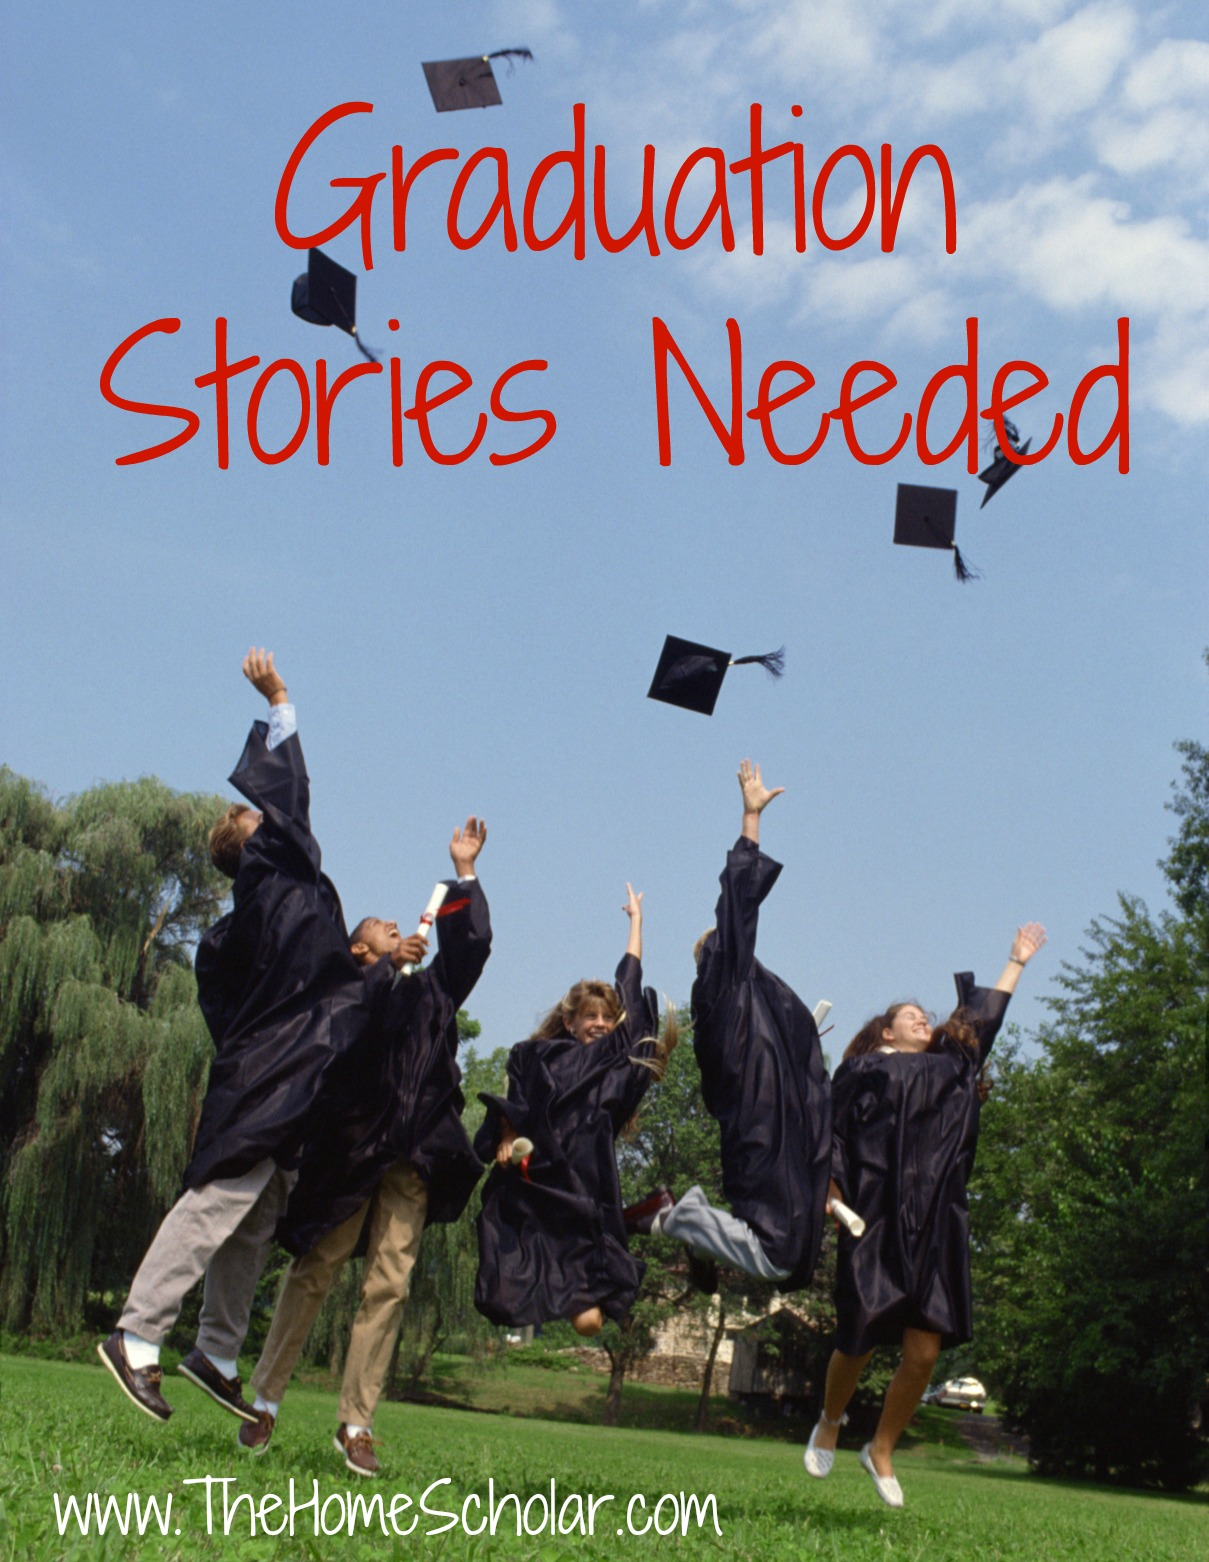 Graduation Stories Needed